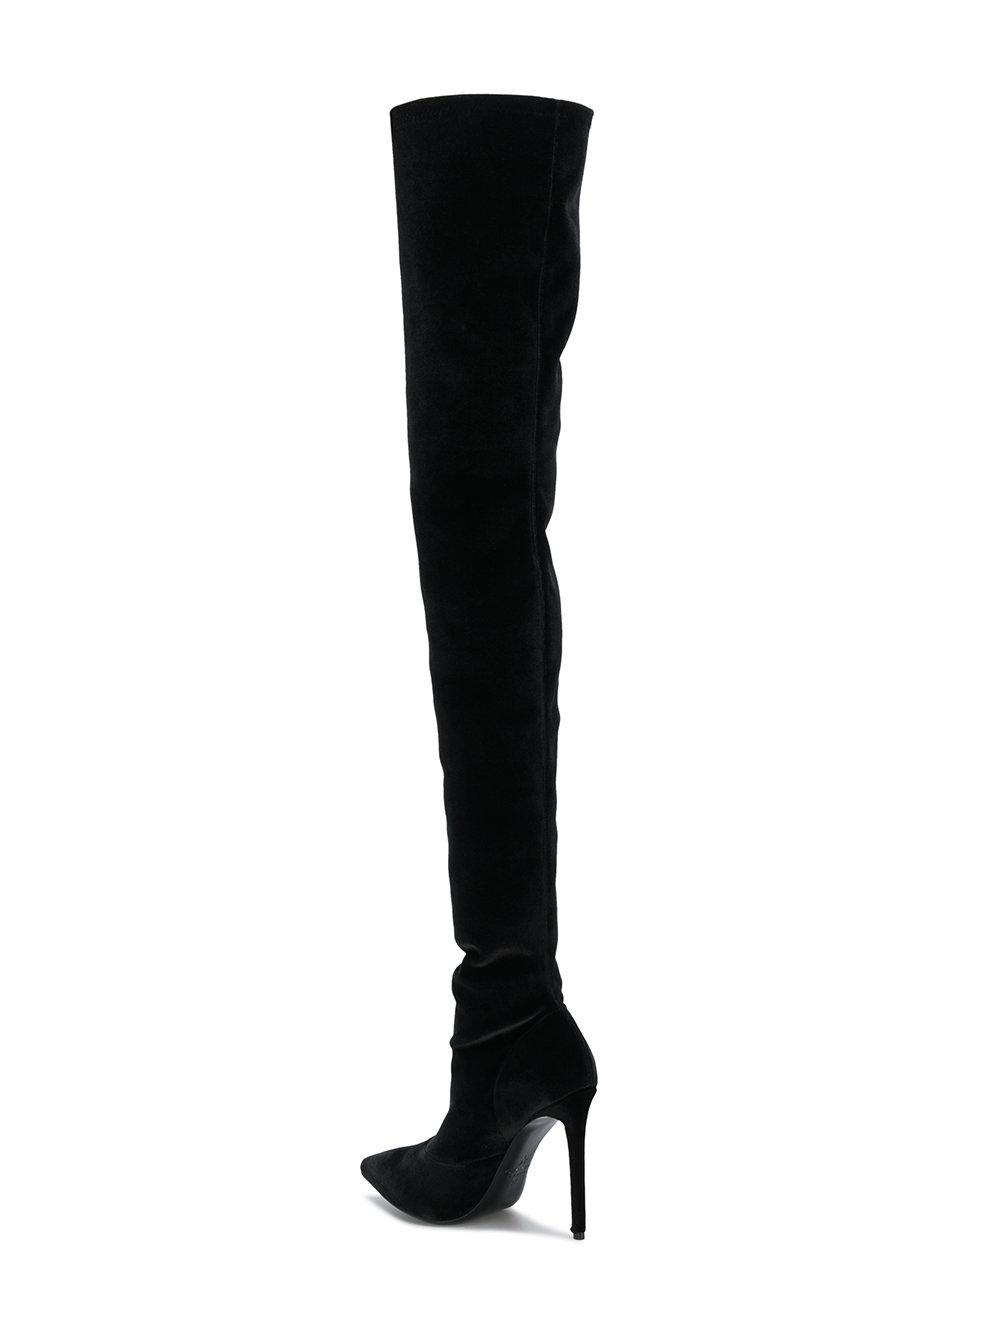 Marc Ellis Leather Thigh-high Heel Boots in Black